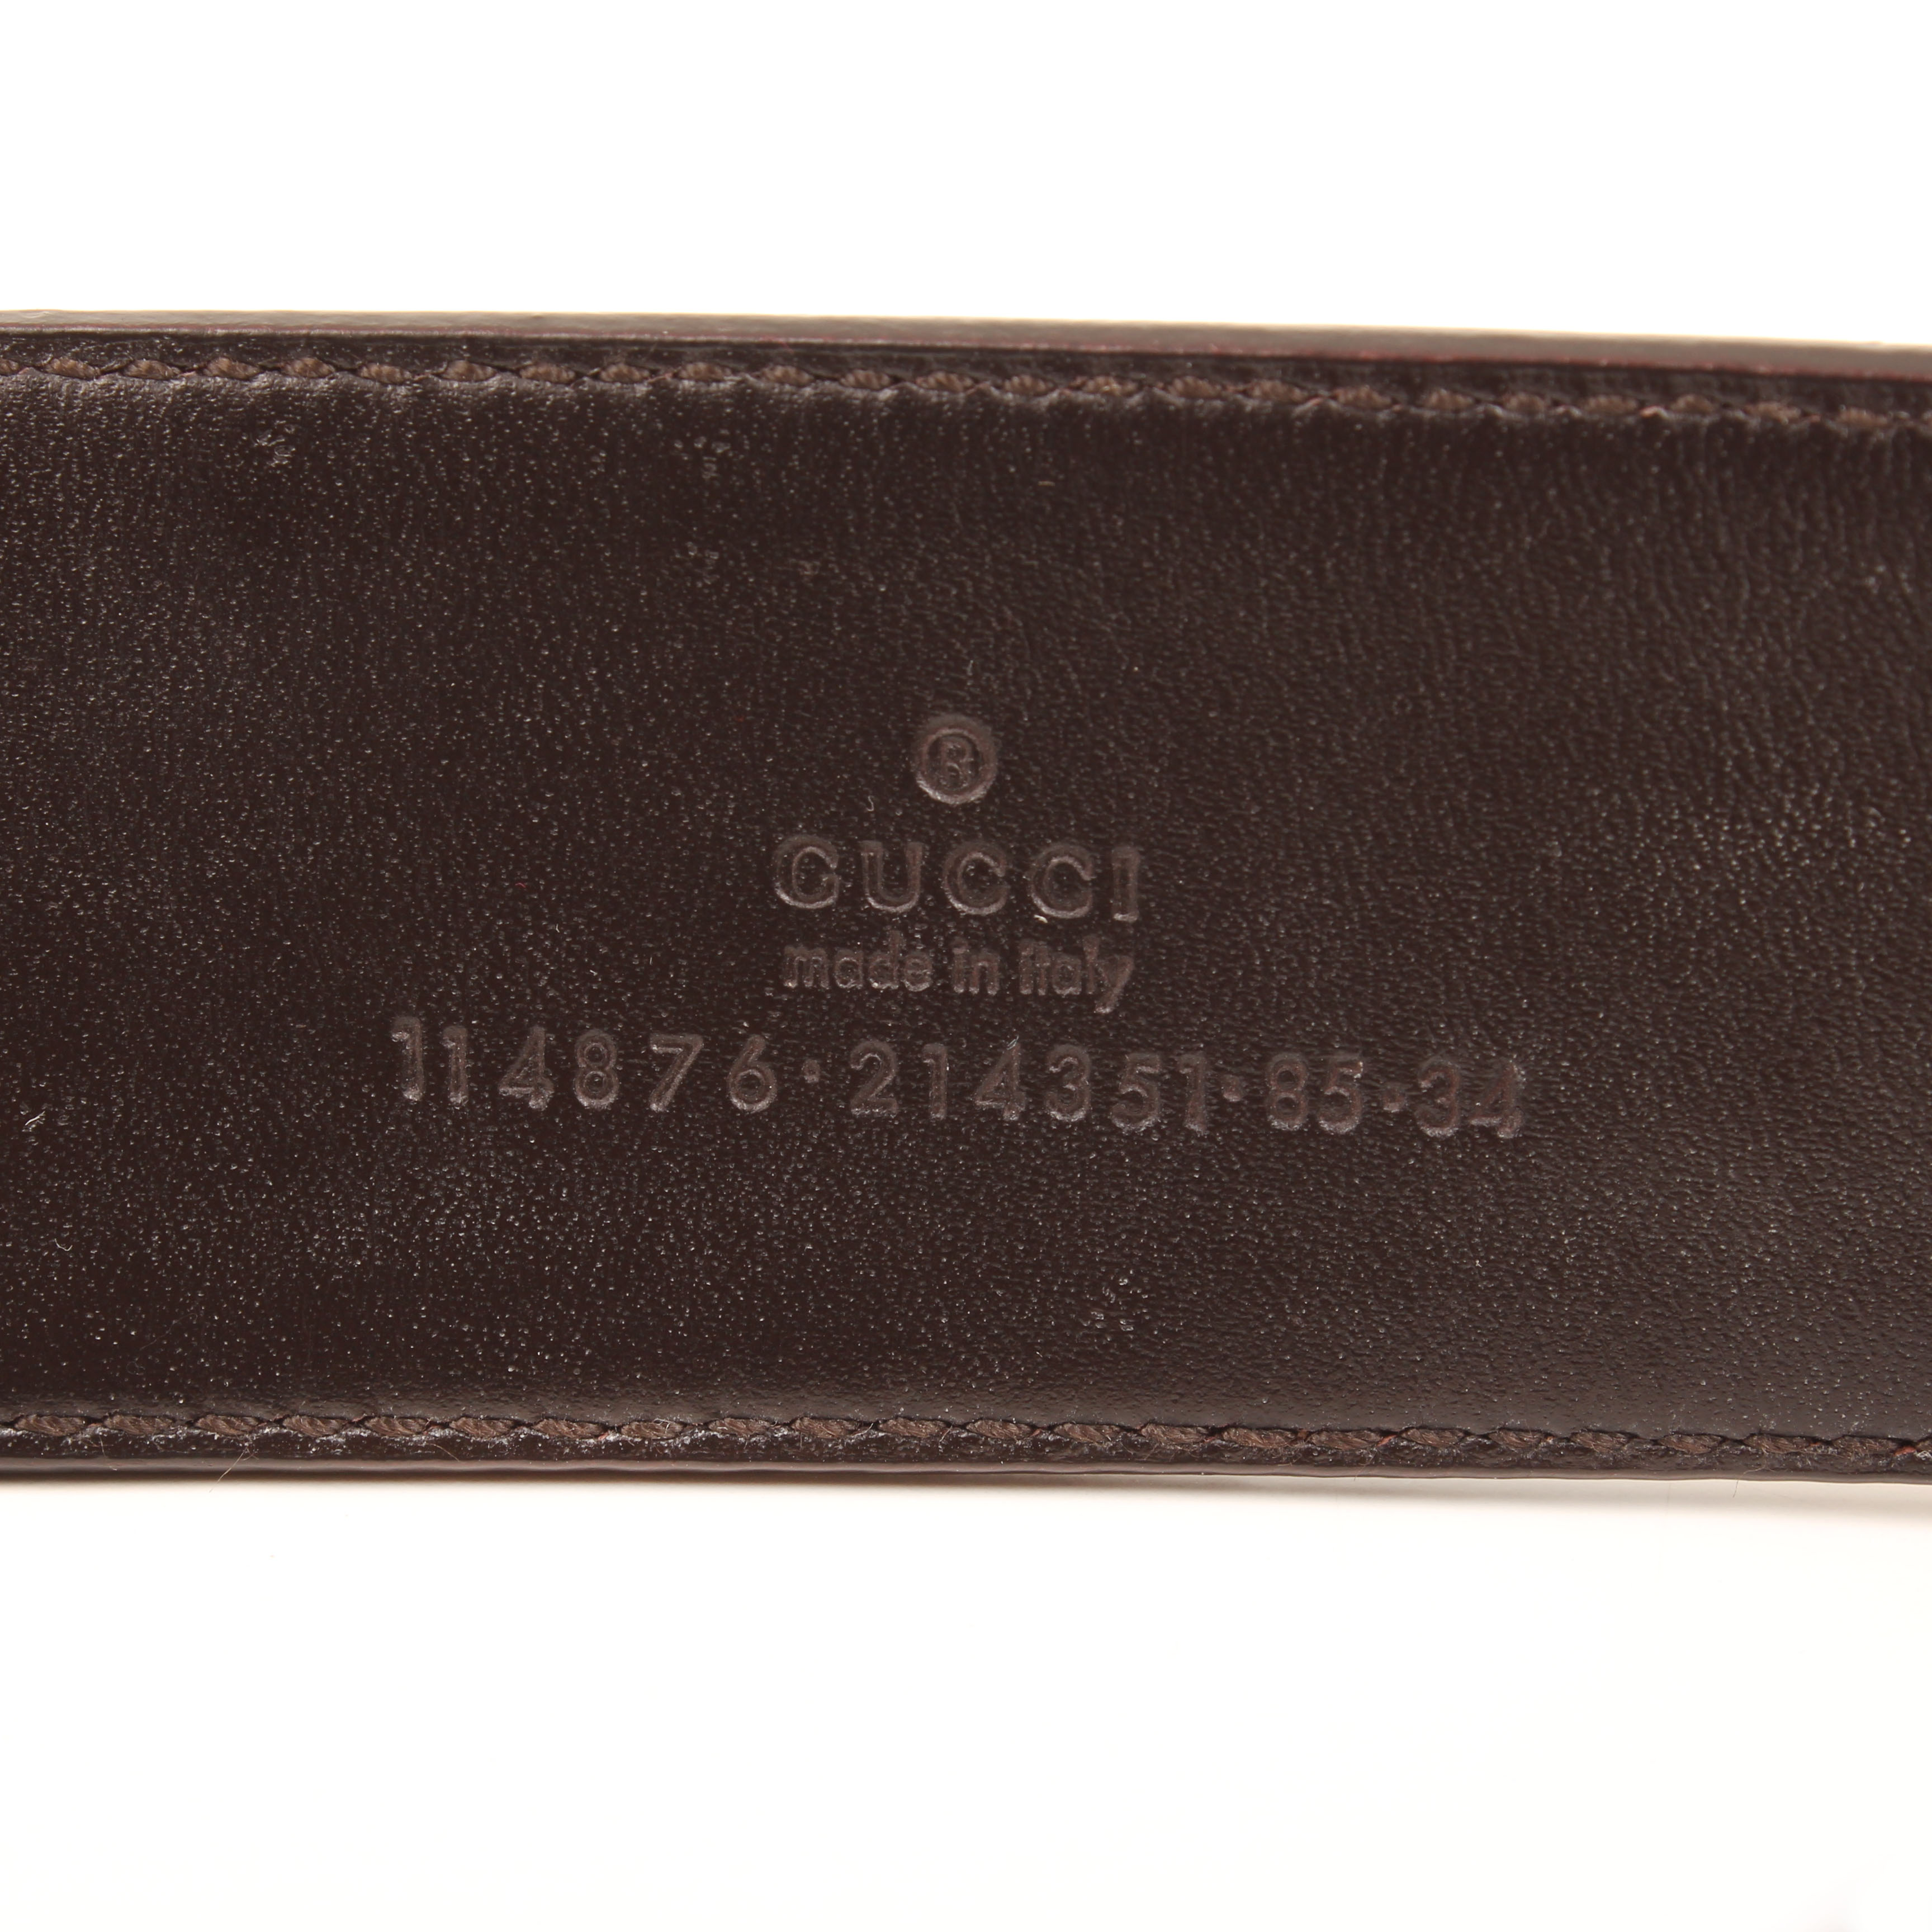 belt gucci gg canvas leather buckle serial